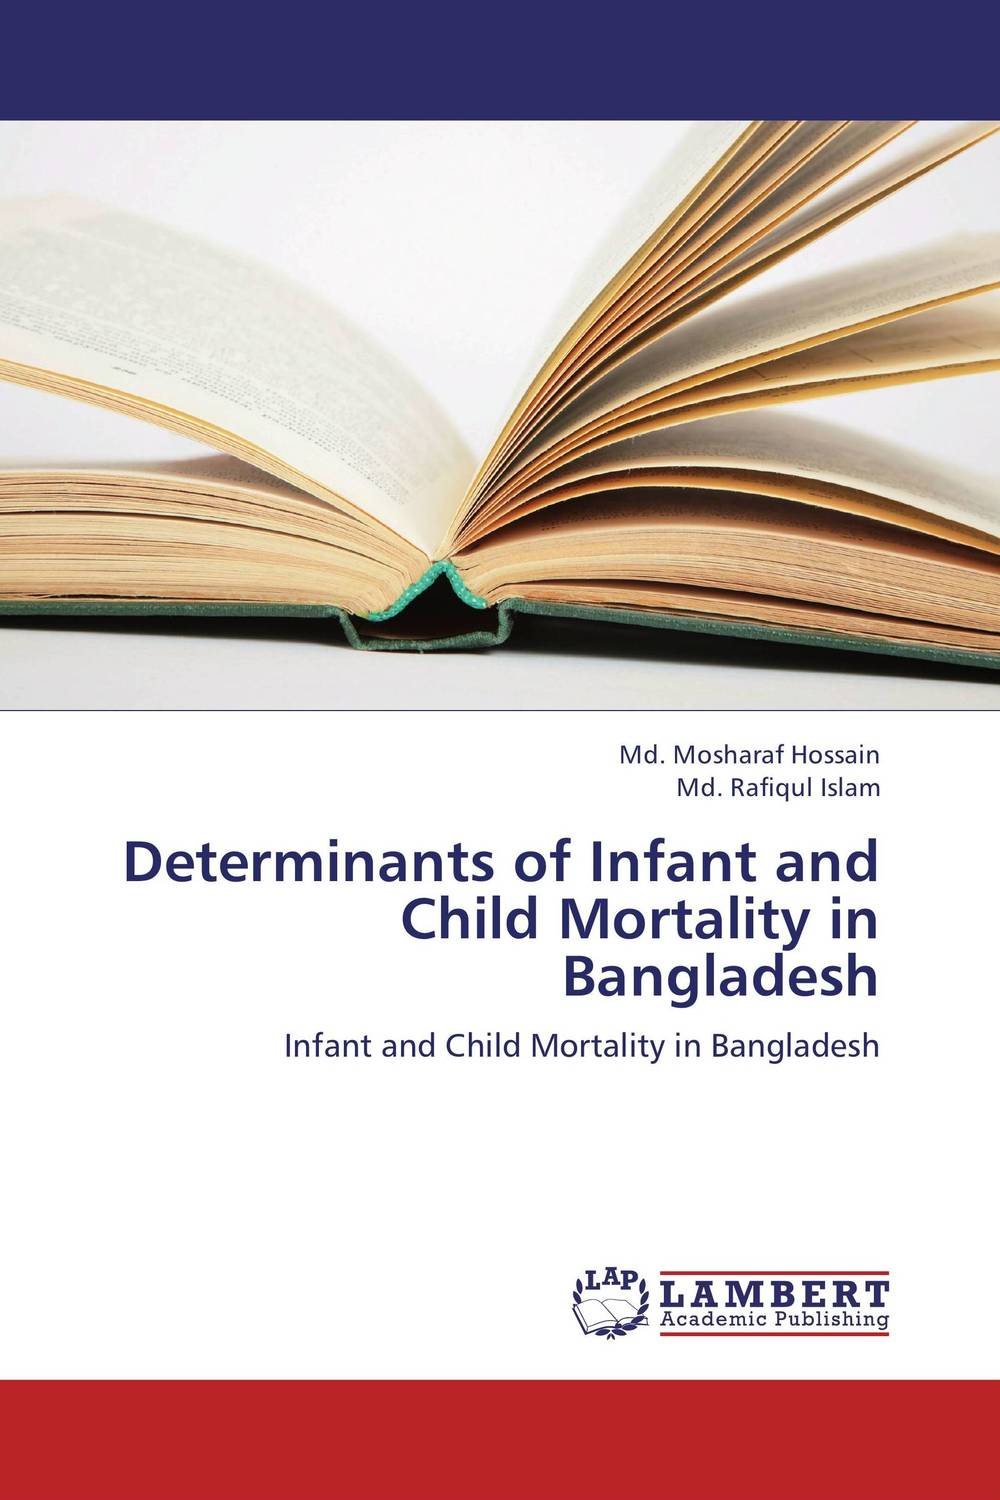 Determinants of Infant and Child Mortality in Bangladesh administrative corruption in bangladesh a behavioural study